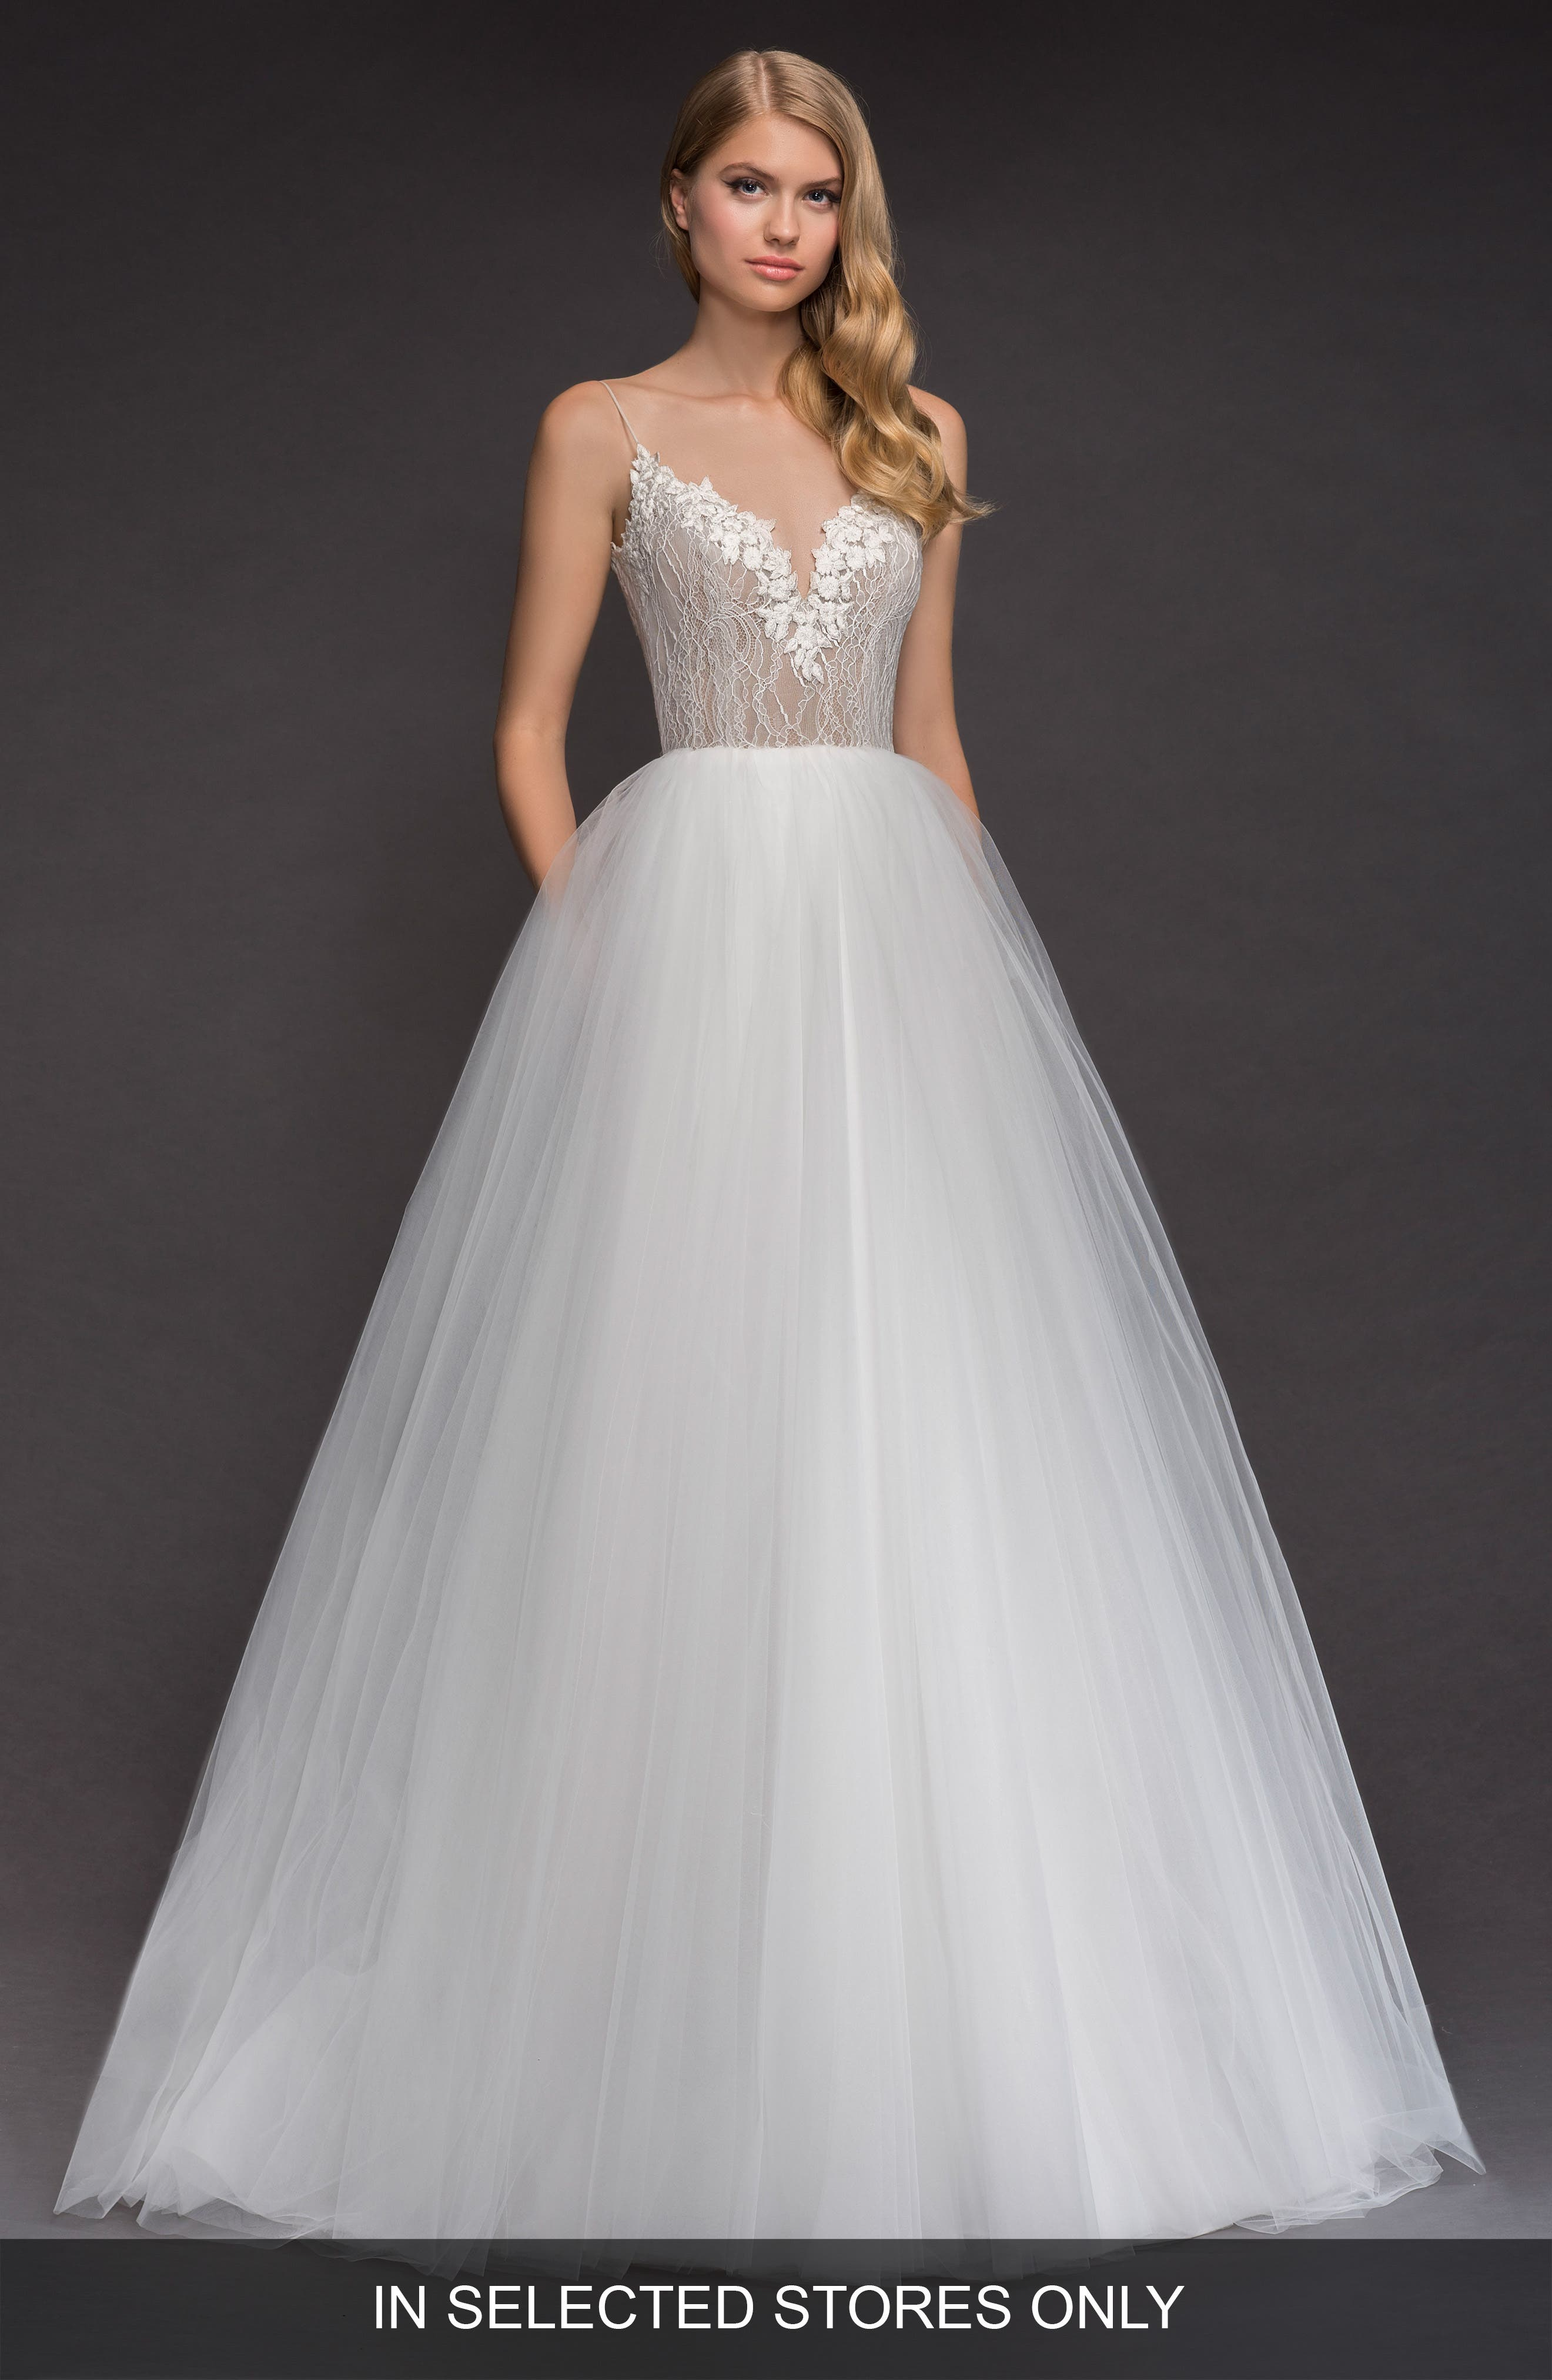 Blush By Hayley Paige Brier Lace & Tulle Ballgown, Size IN STORE ONLY - Ivory